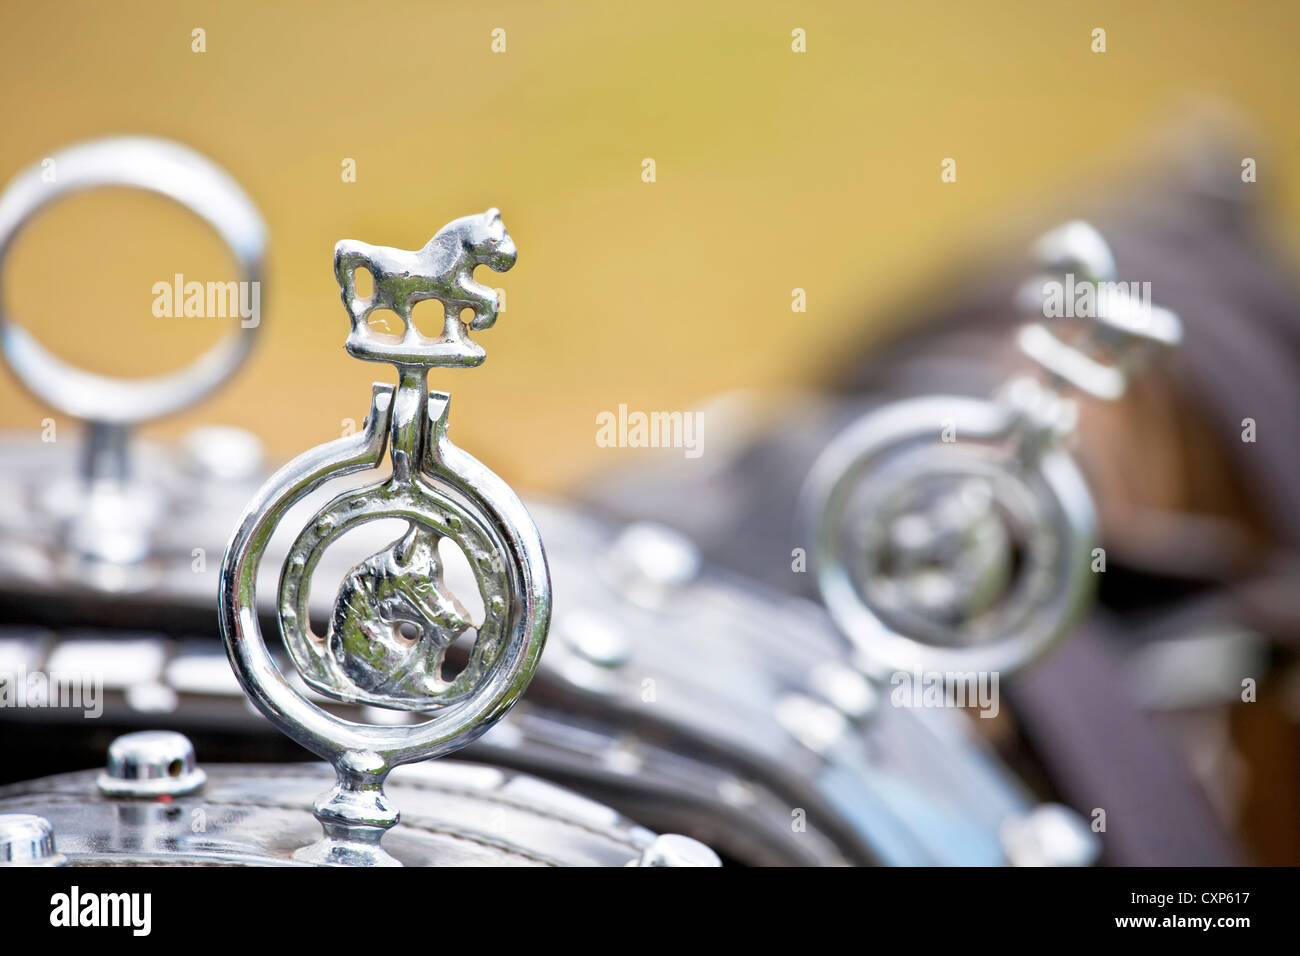 Close up of the detail of a traditional set of harness for draft horses. - Stock Image